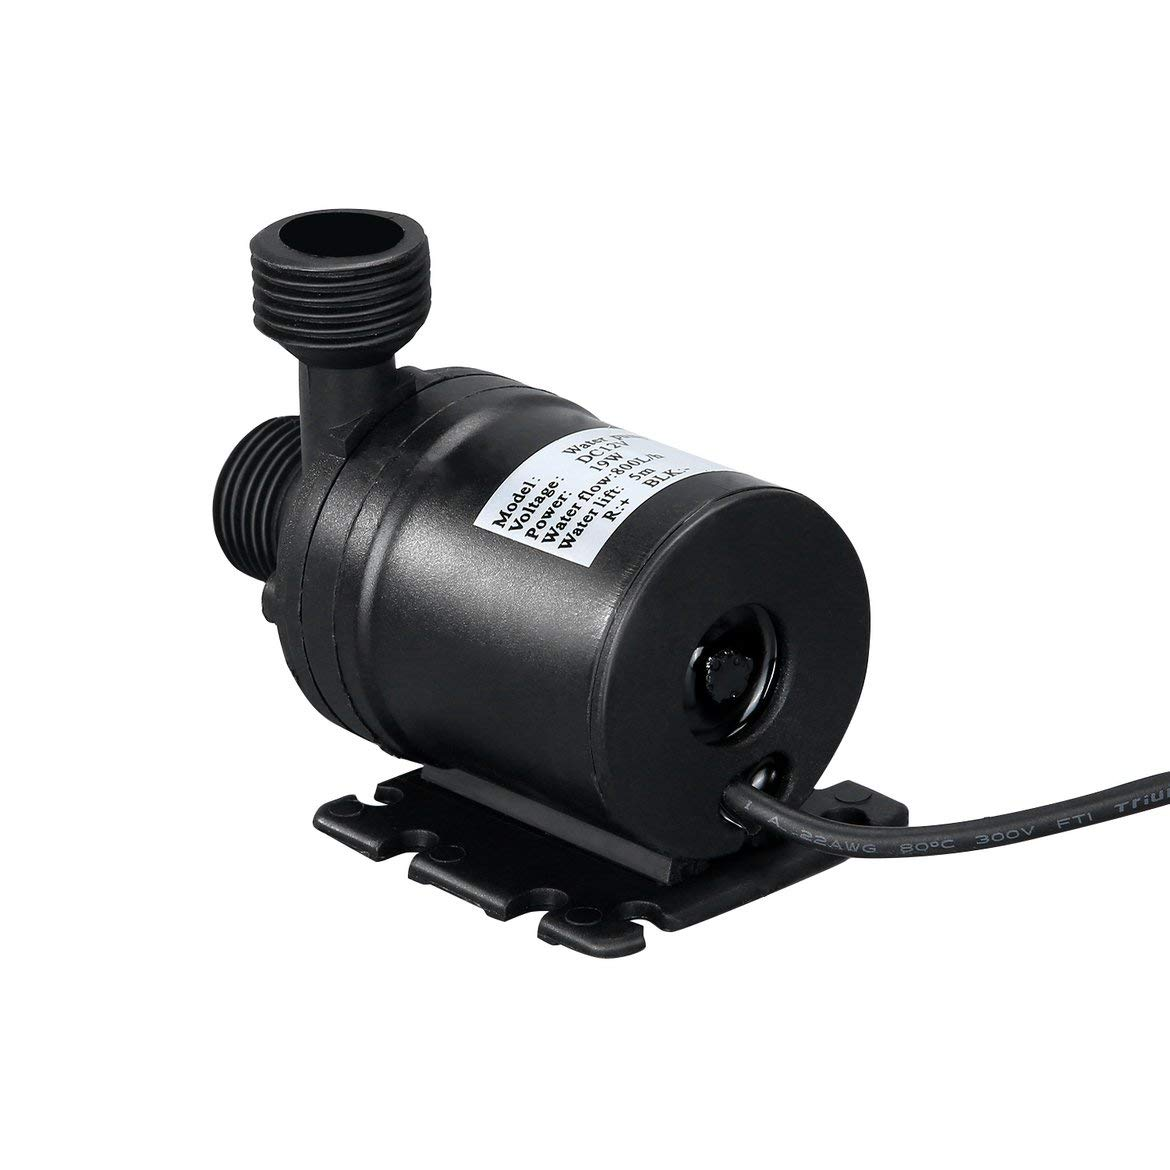 nero H Brushless Motor sommersa Pompa acqua filo multifunzione acqua Professionale Mini Whisper DC 12 V lift 5 Mt 800L